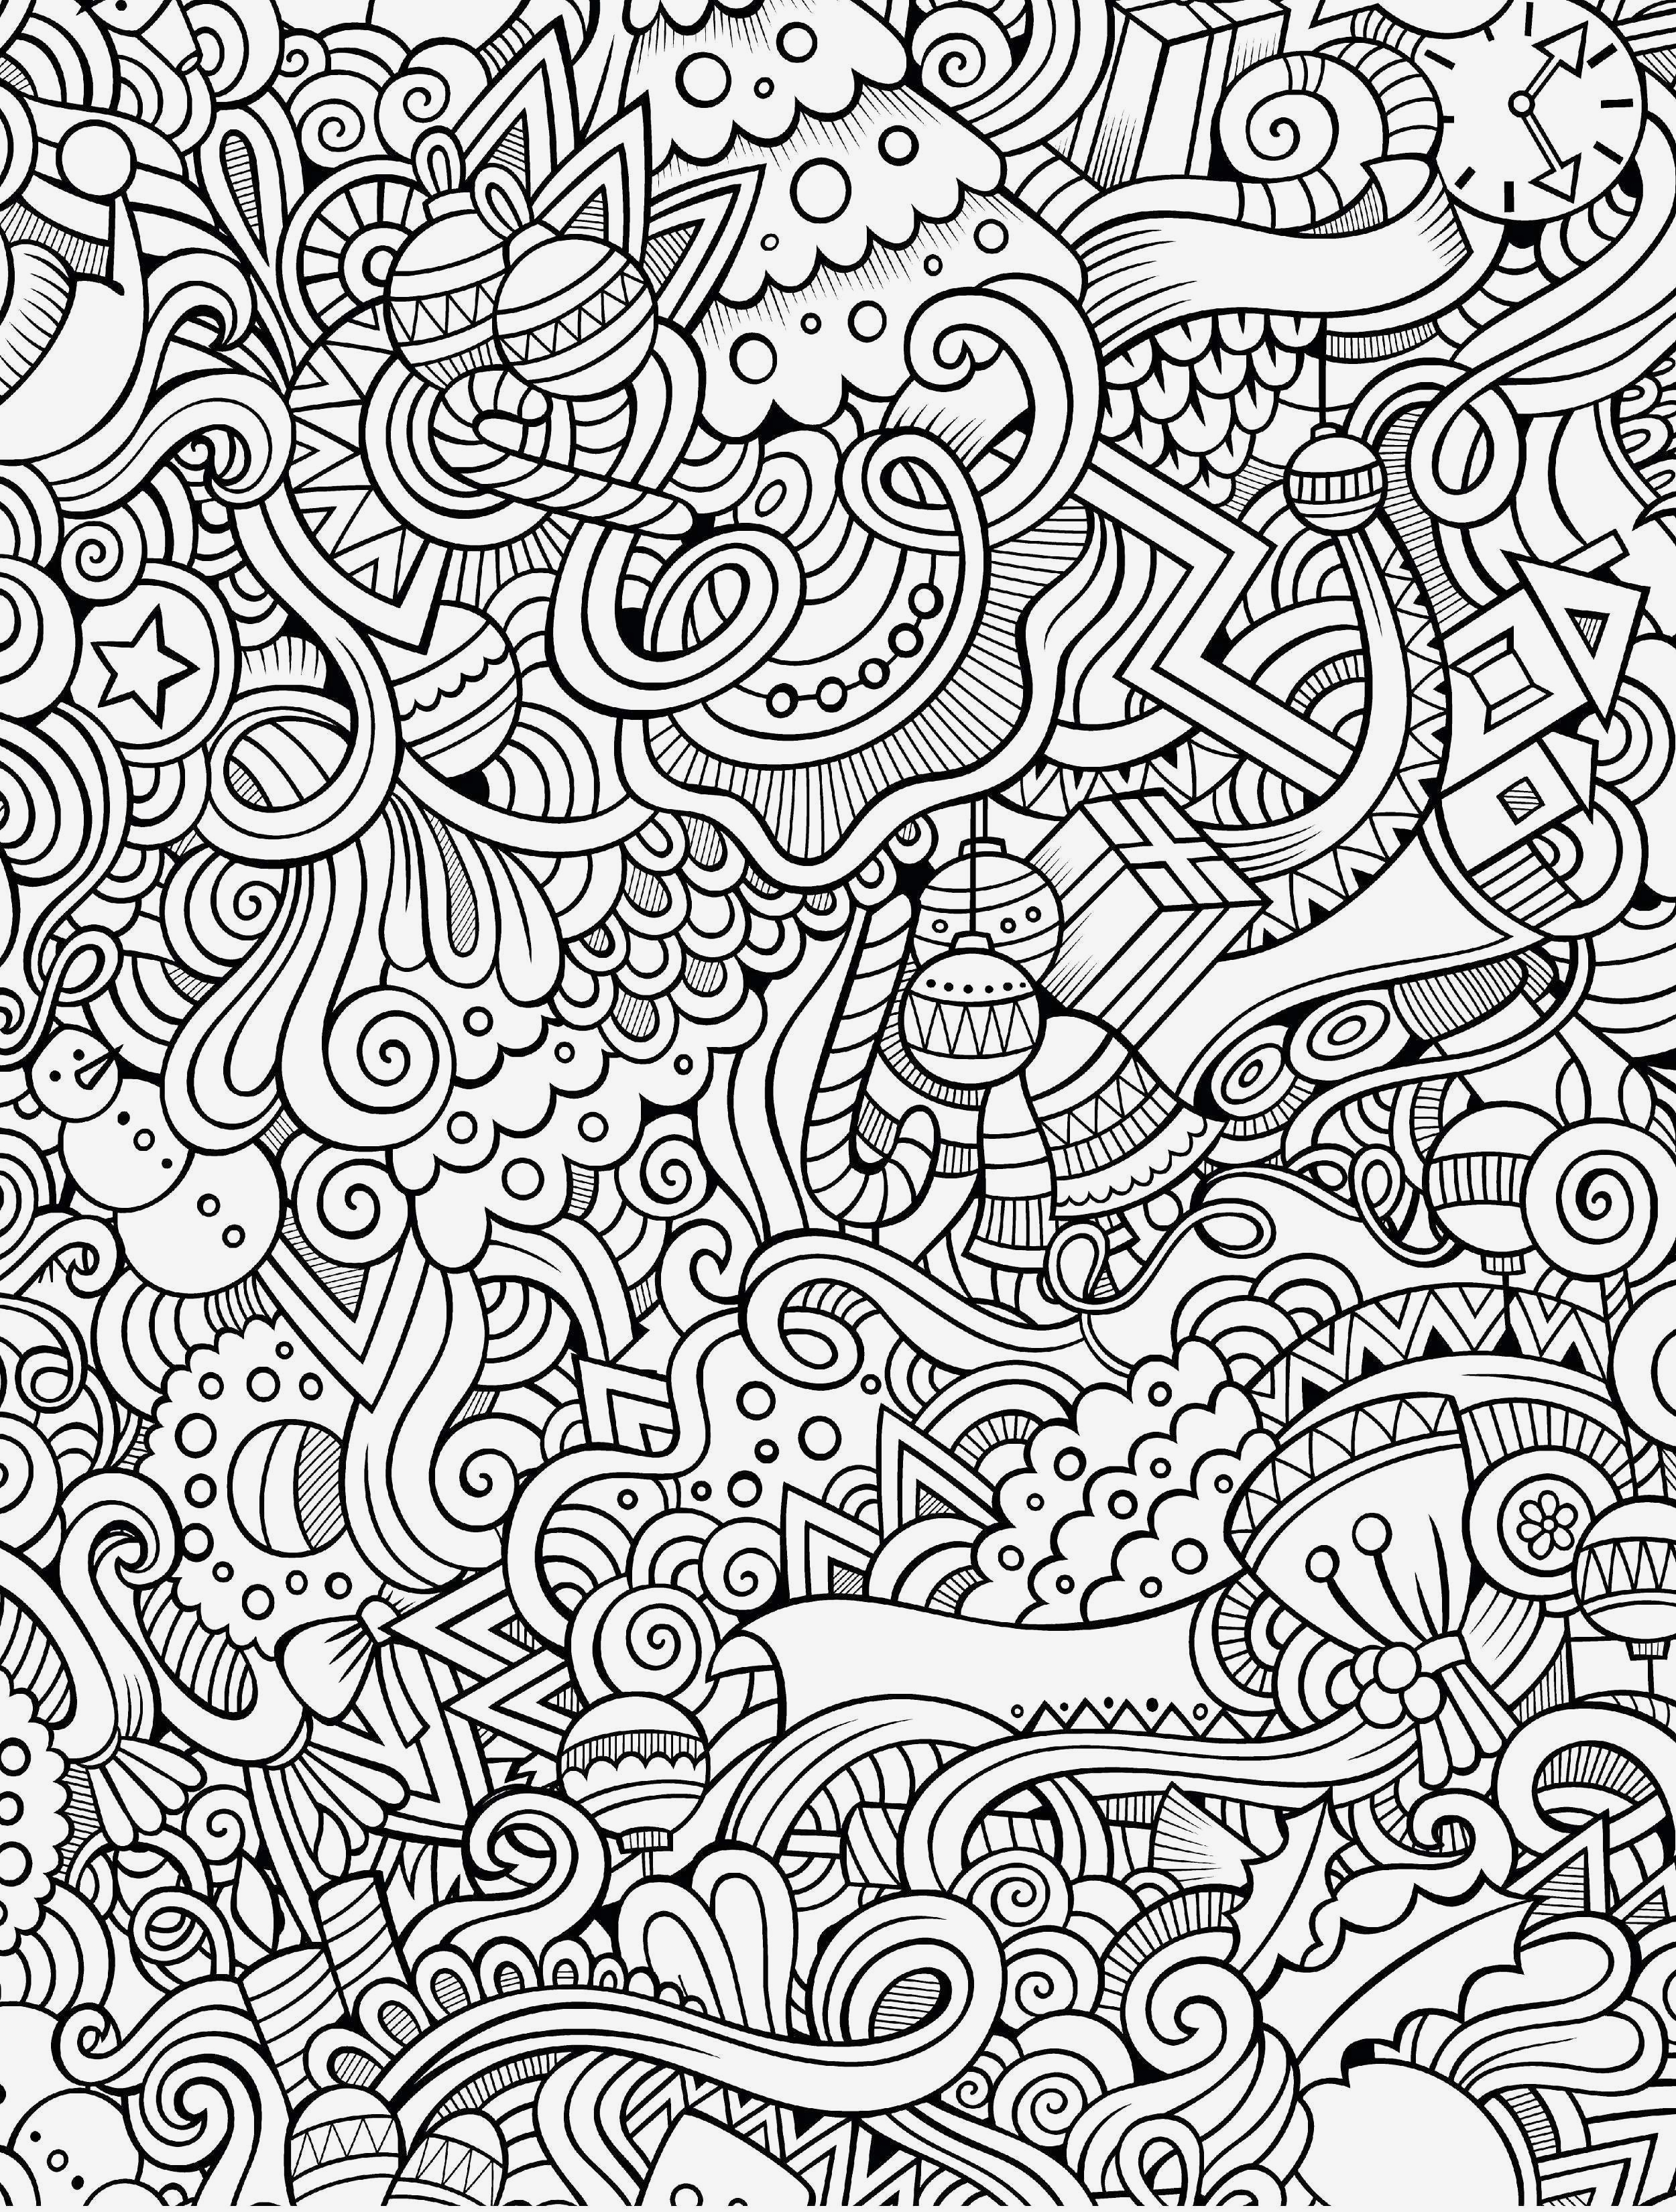 27 Nature Mandala Coloring Pages Collection - Coloring Sheets